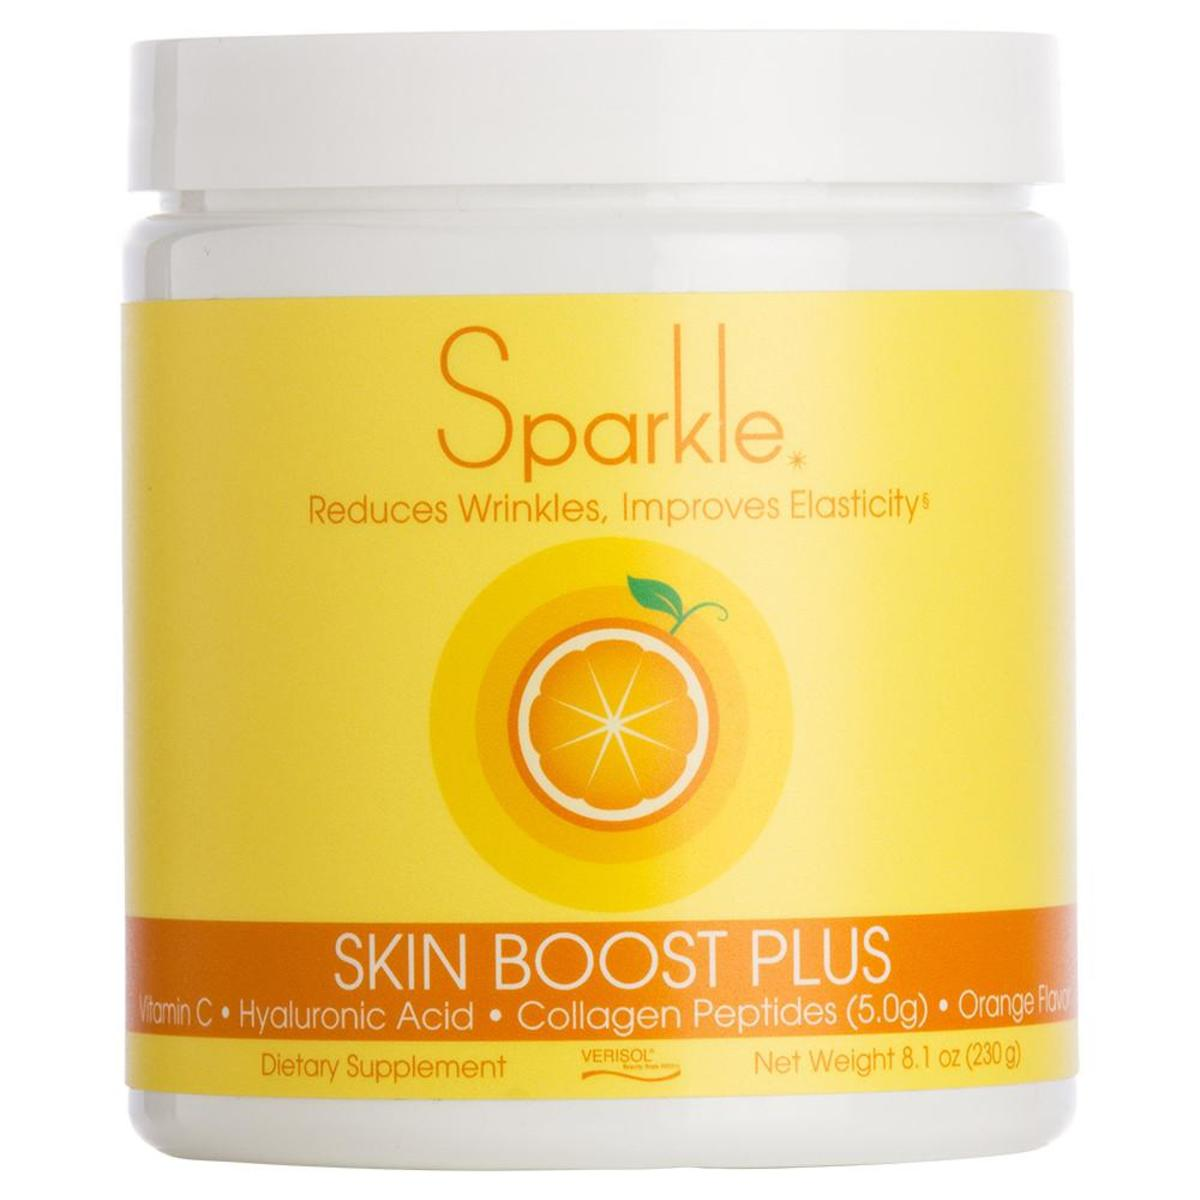 Sparkle's key ingredient is Verisol which has been clinically tested for it's efficacy.